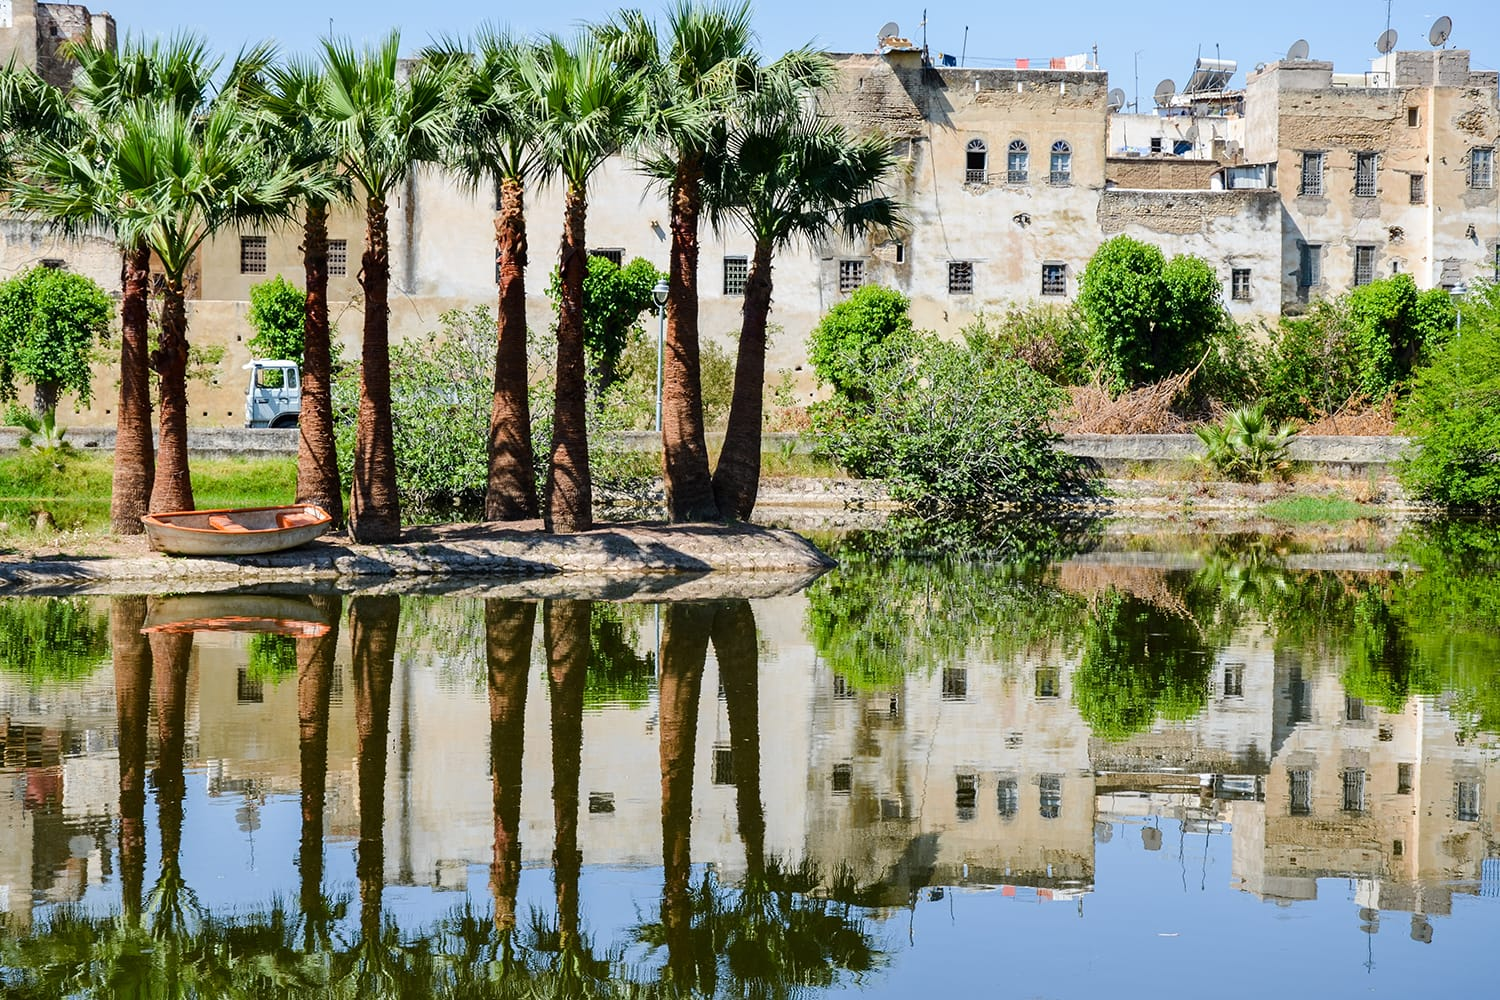 Jardin Jnan Sbil, Royal Park in Fes with its lake and towering palms, Fez, Morocco